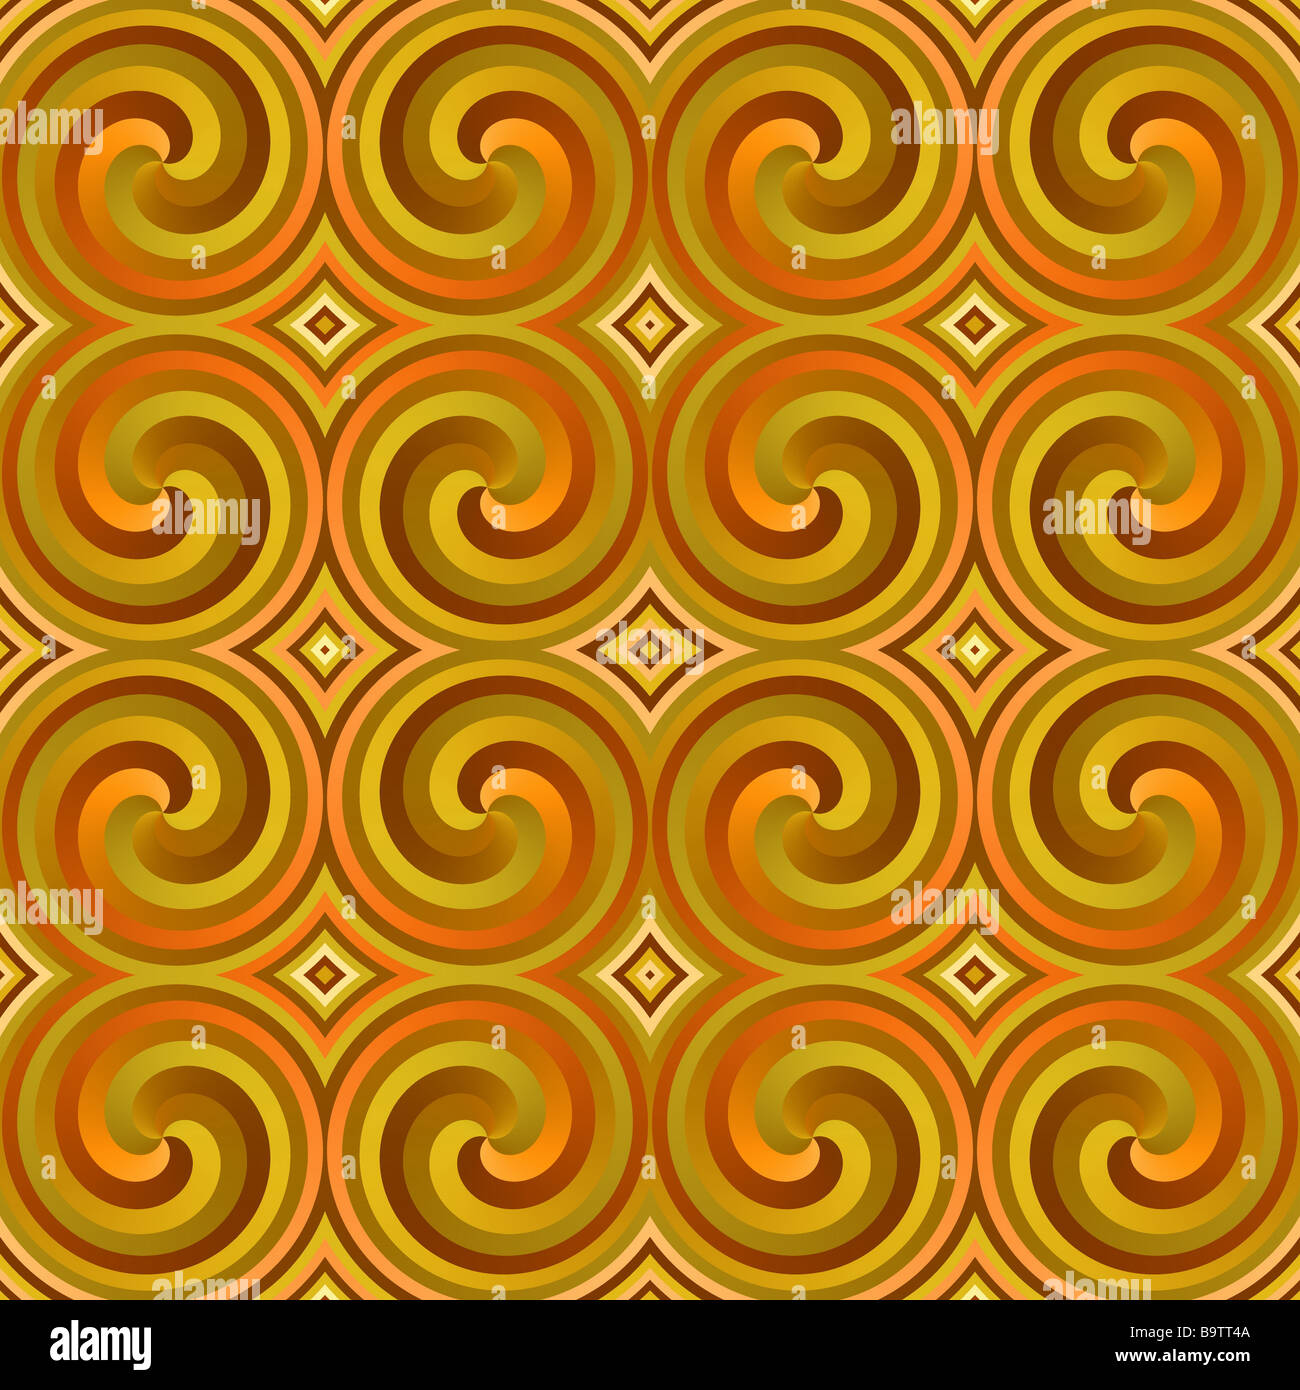 Colorful abstract retro patterns geometric design wallpaper Stock ...